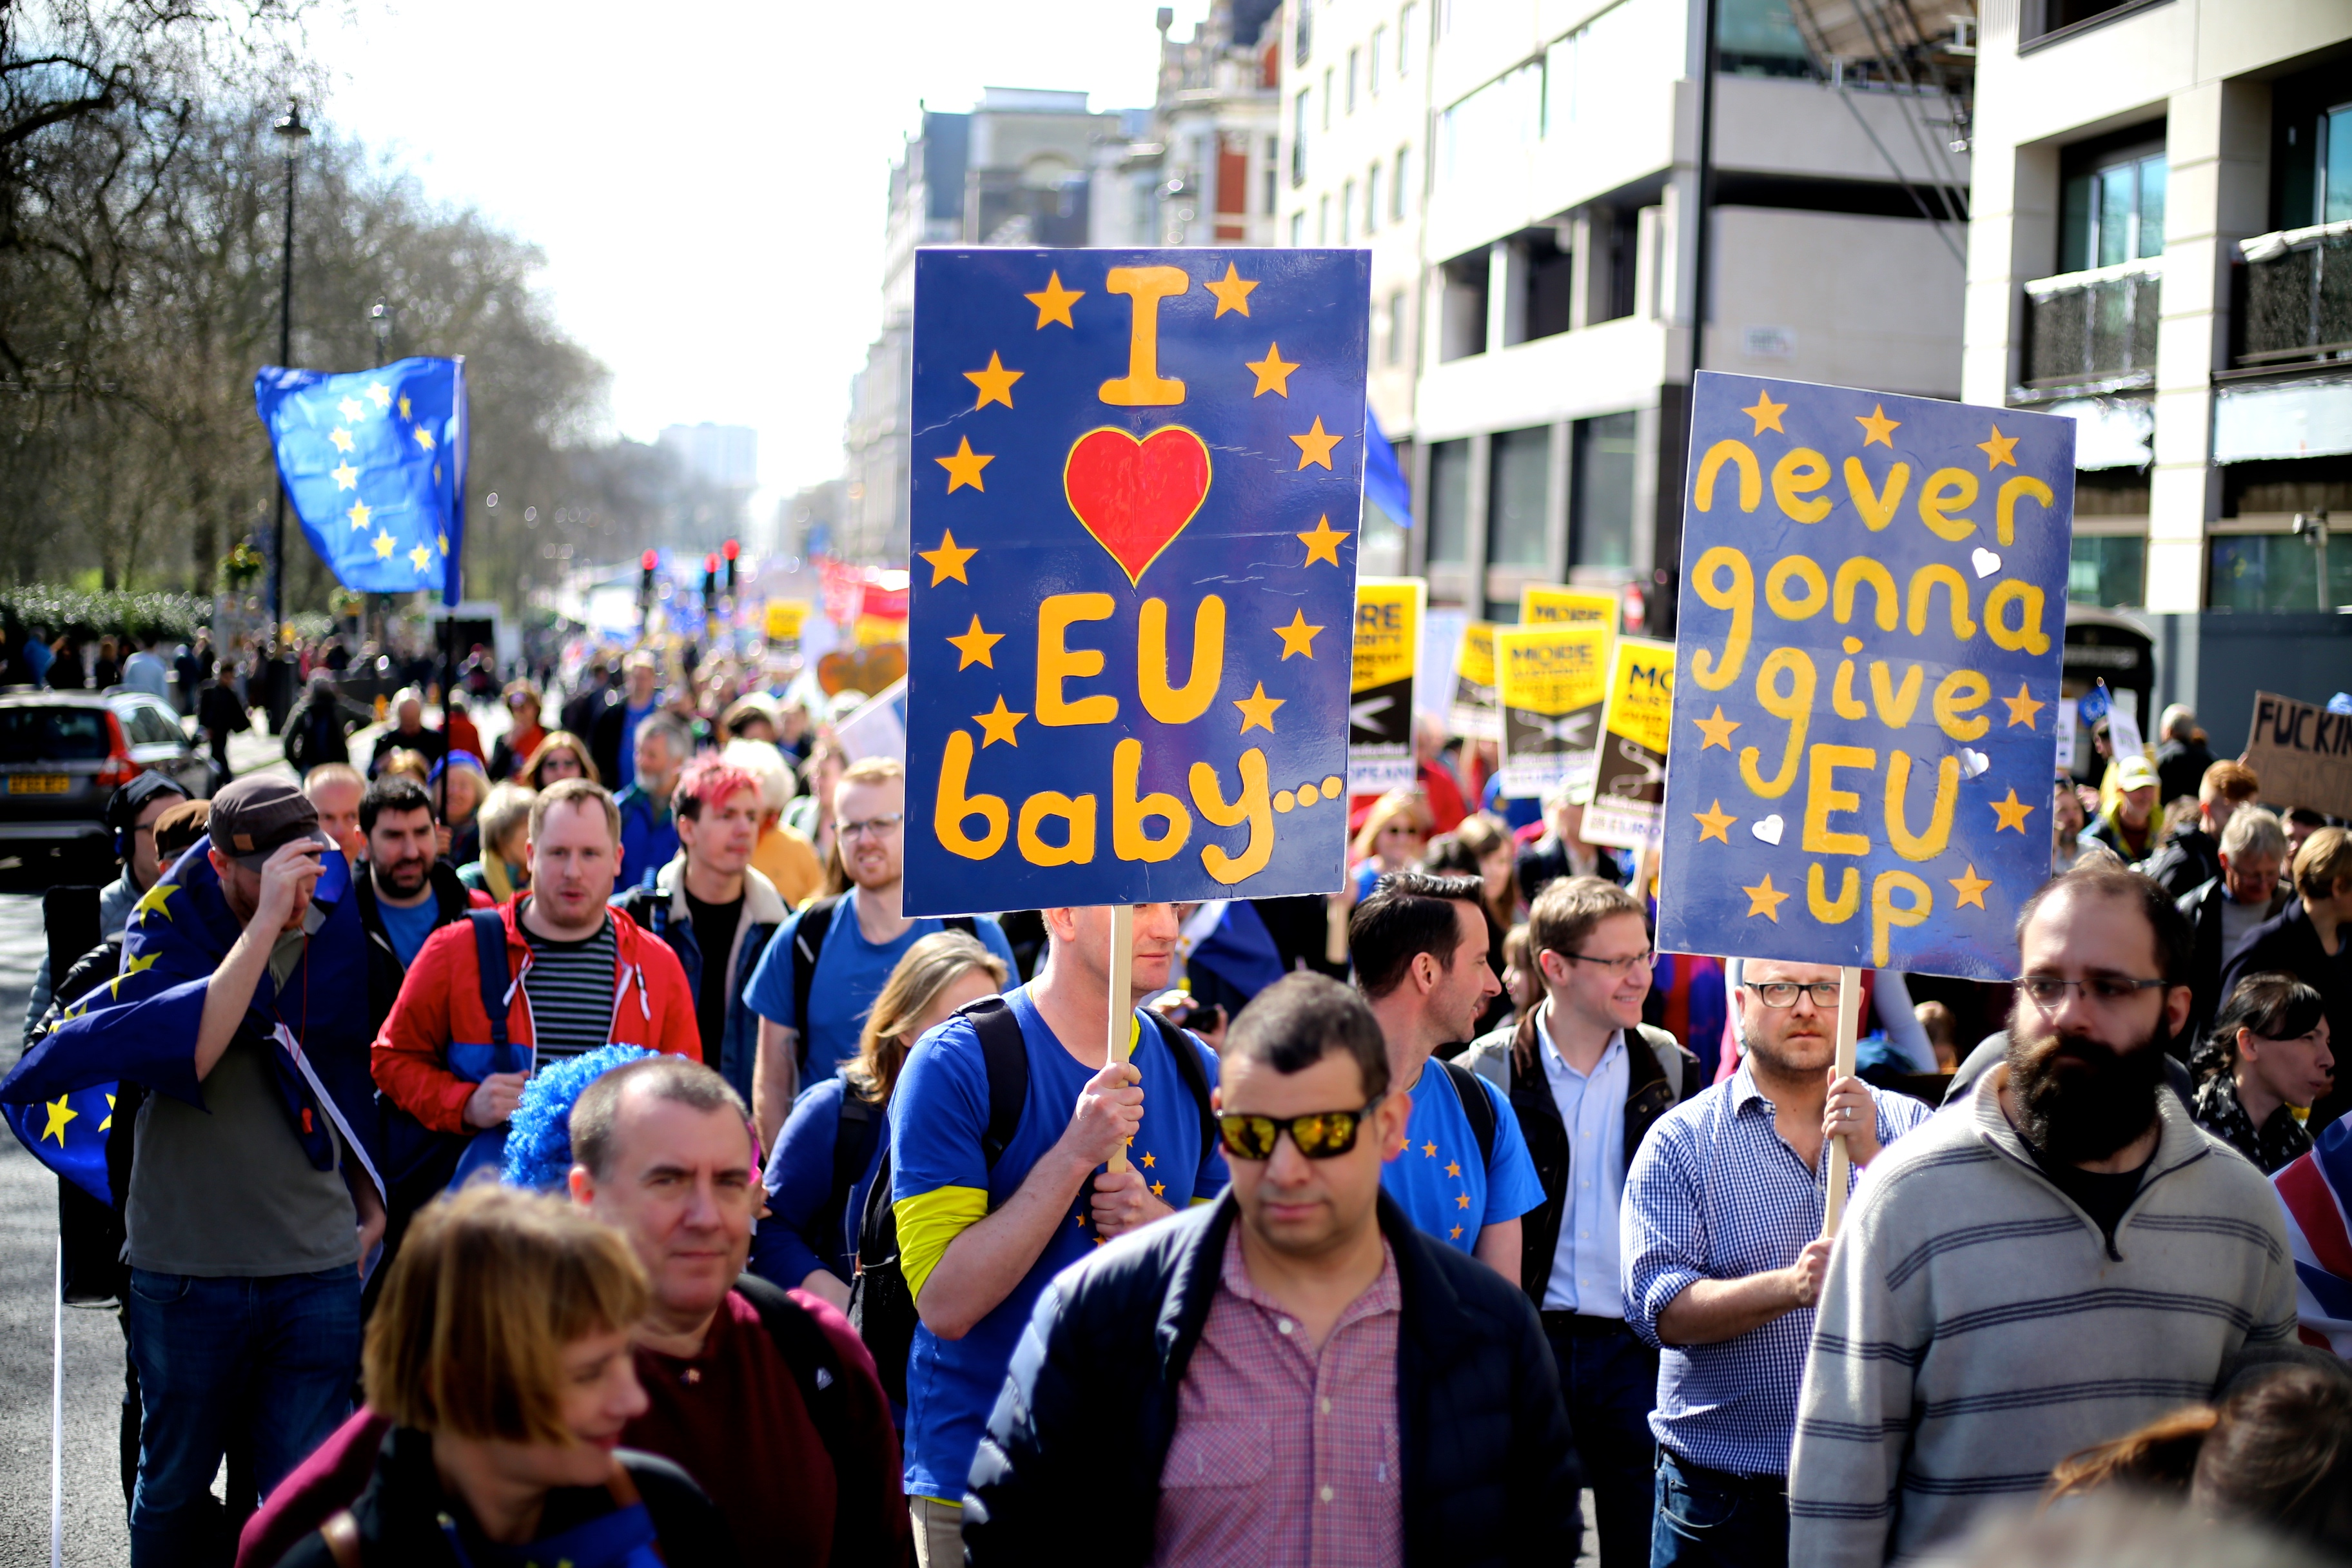 At a protest march against Brexit in London. Photo © Wikimedia Commons